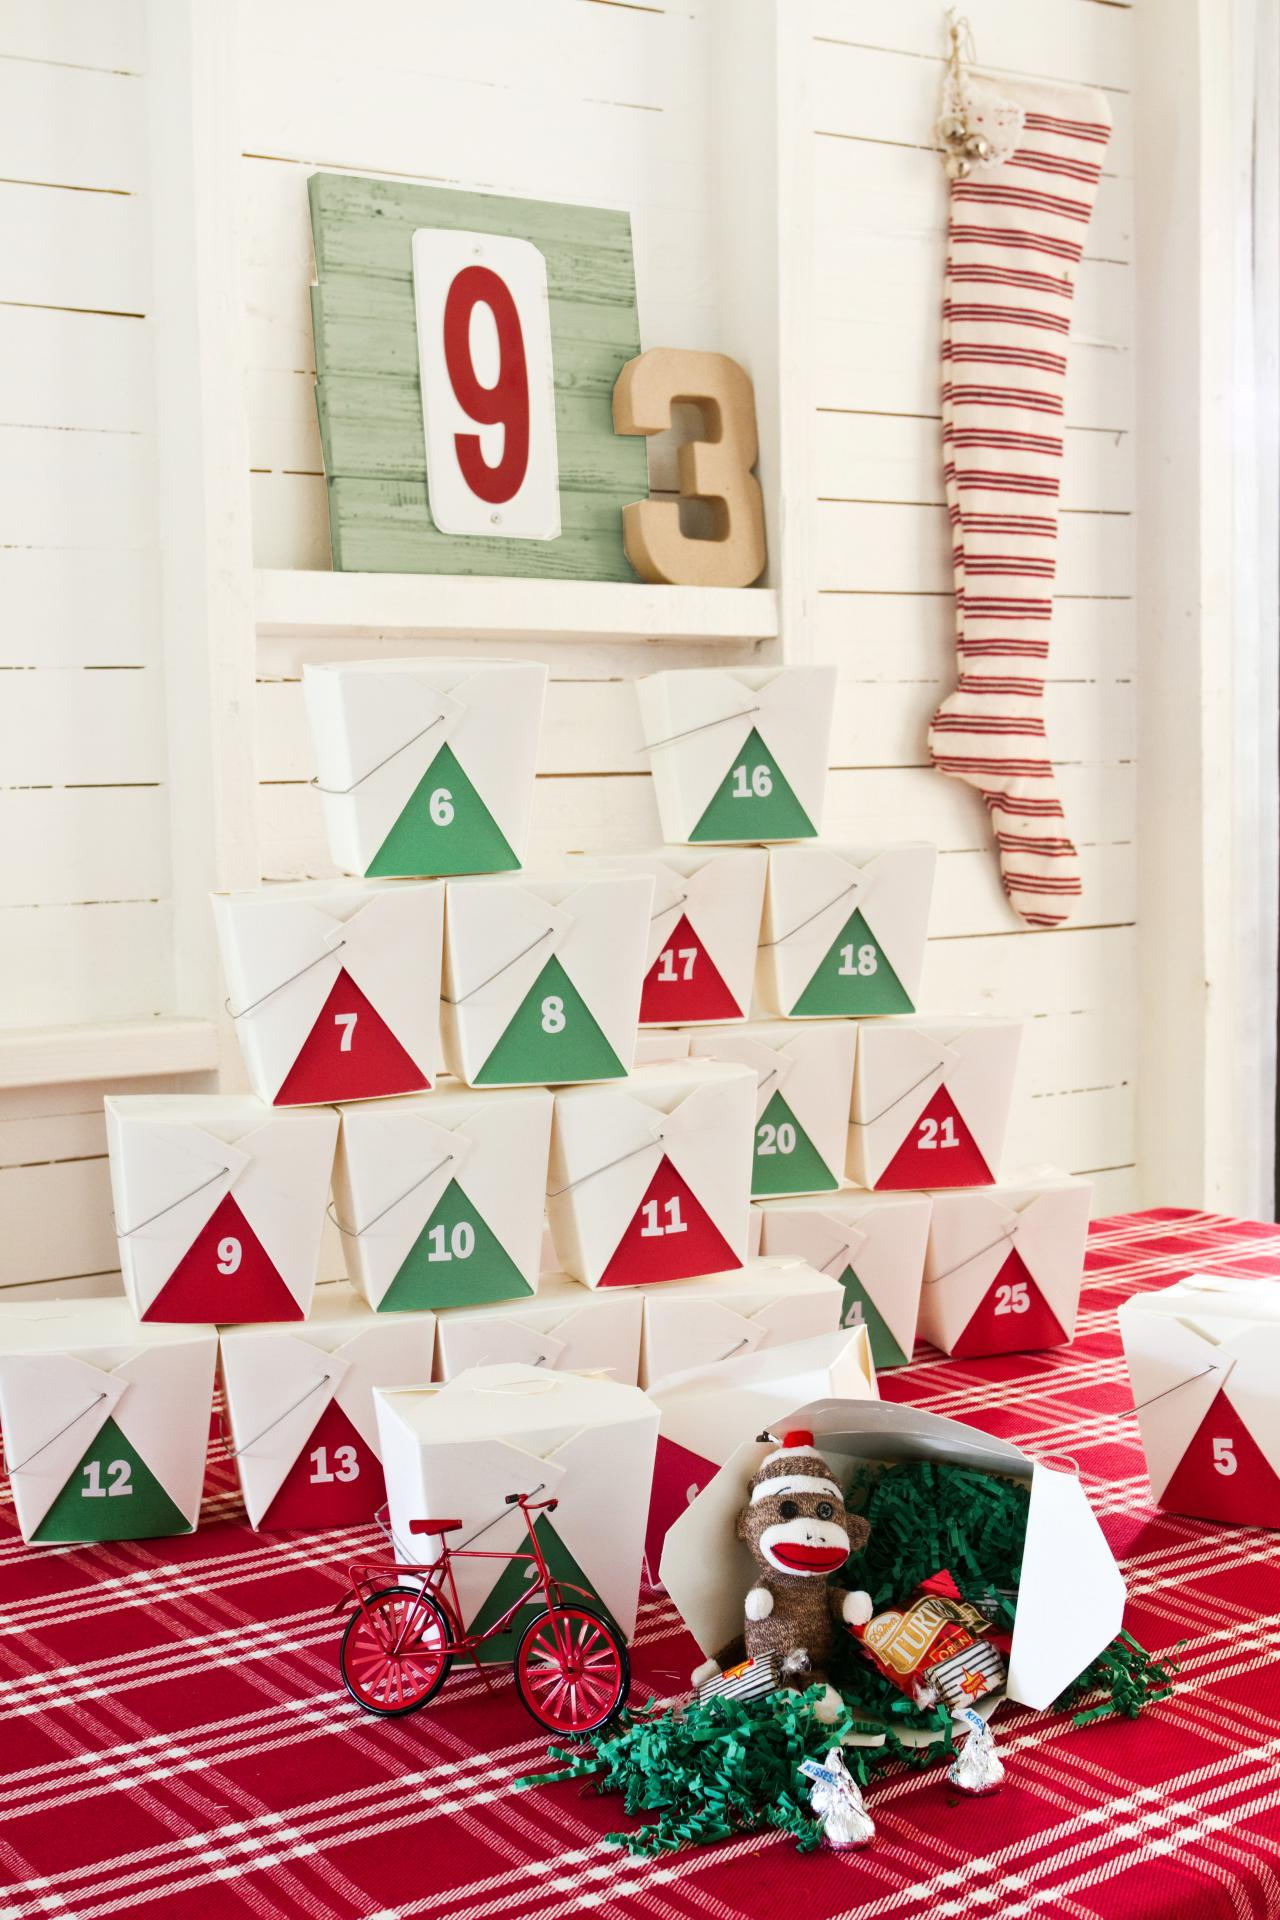 How to make a lighted christmas box decoration - Make Your Own Takeout Box Advent Calendar